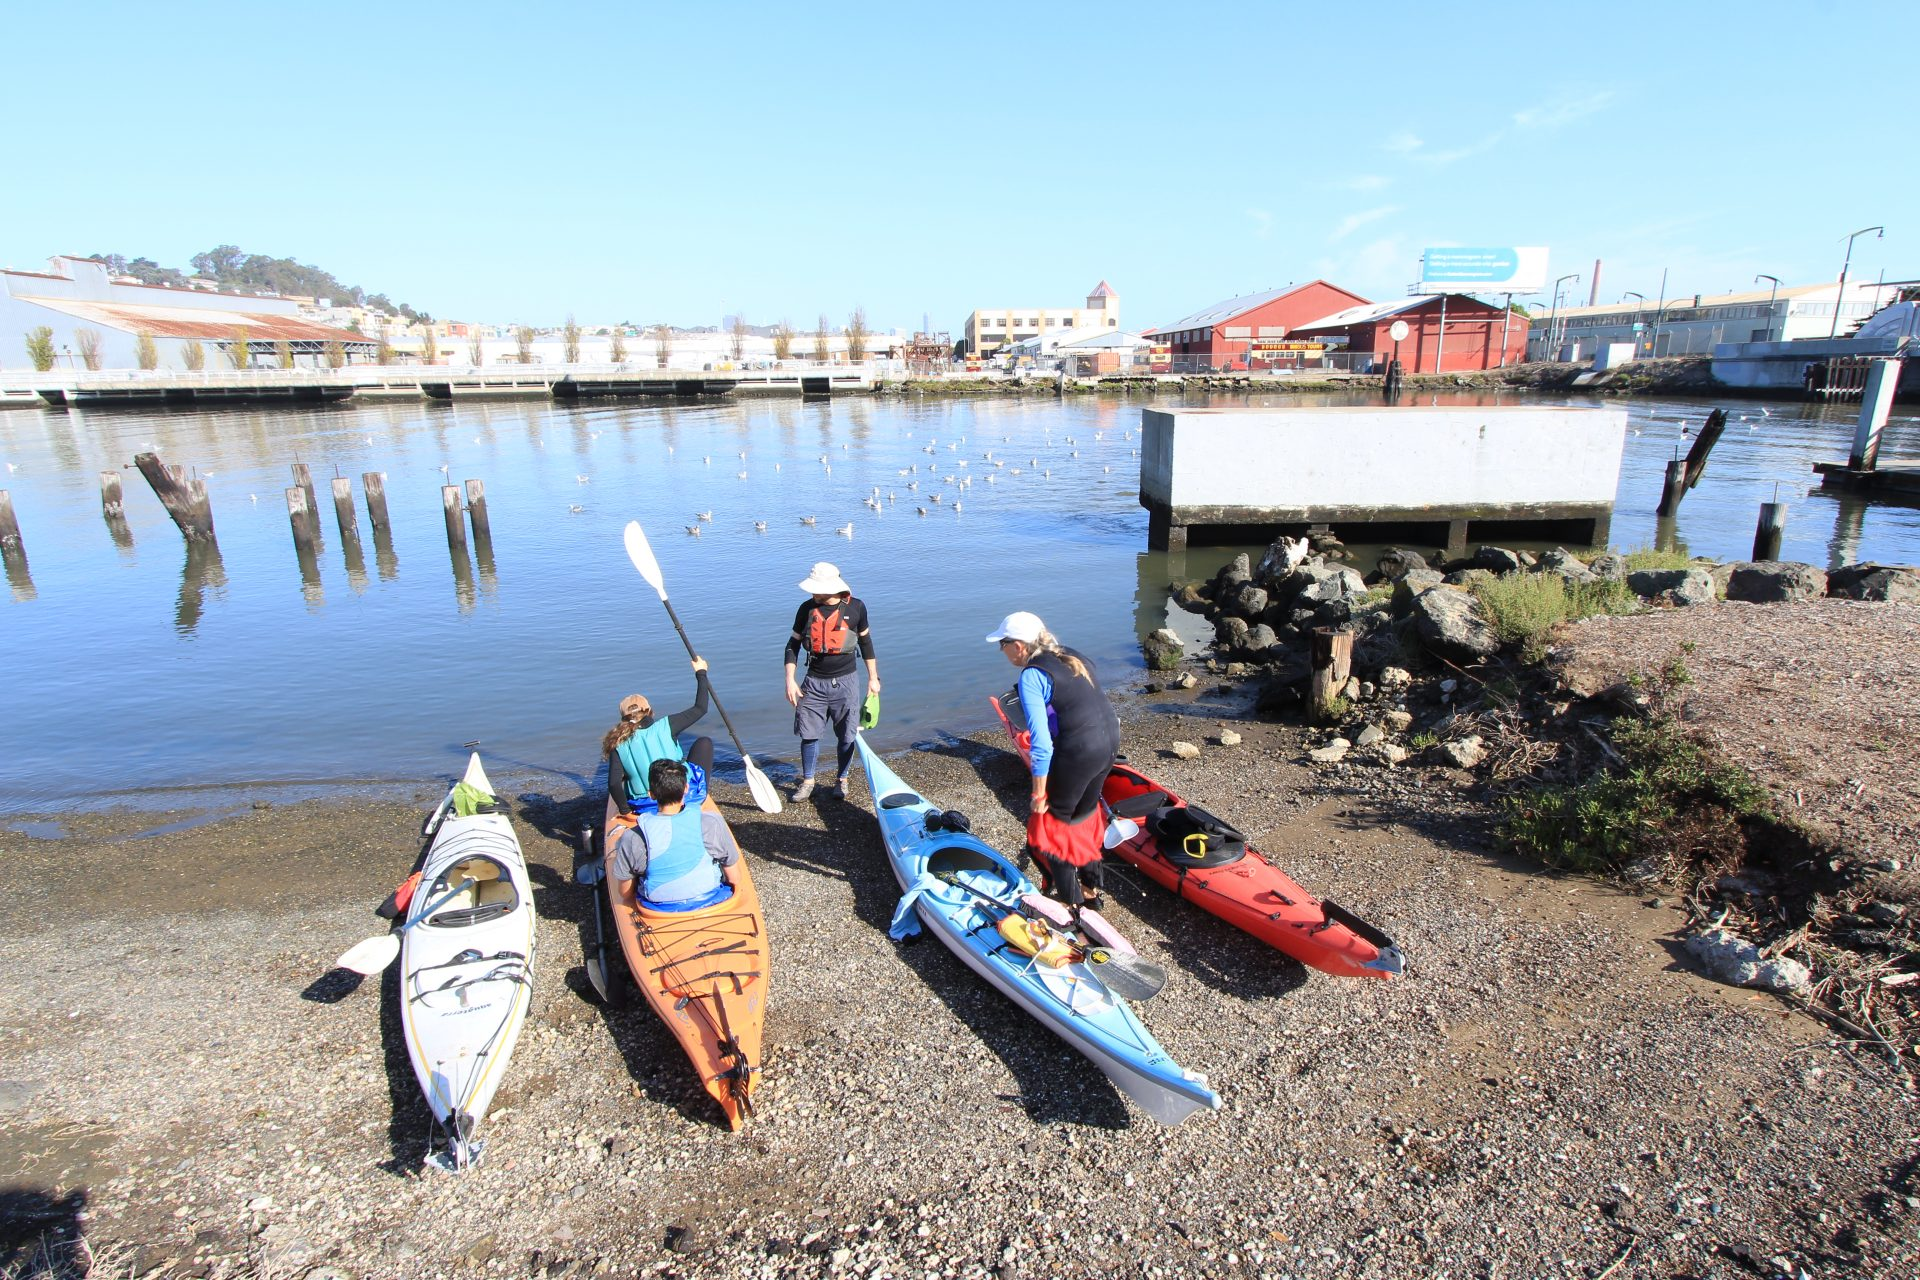 Four kayaks on beach, two people in a double, and two people standing